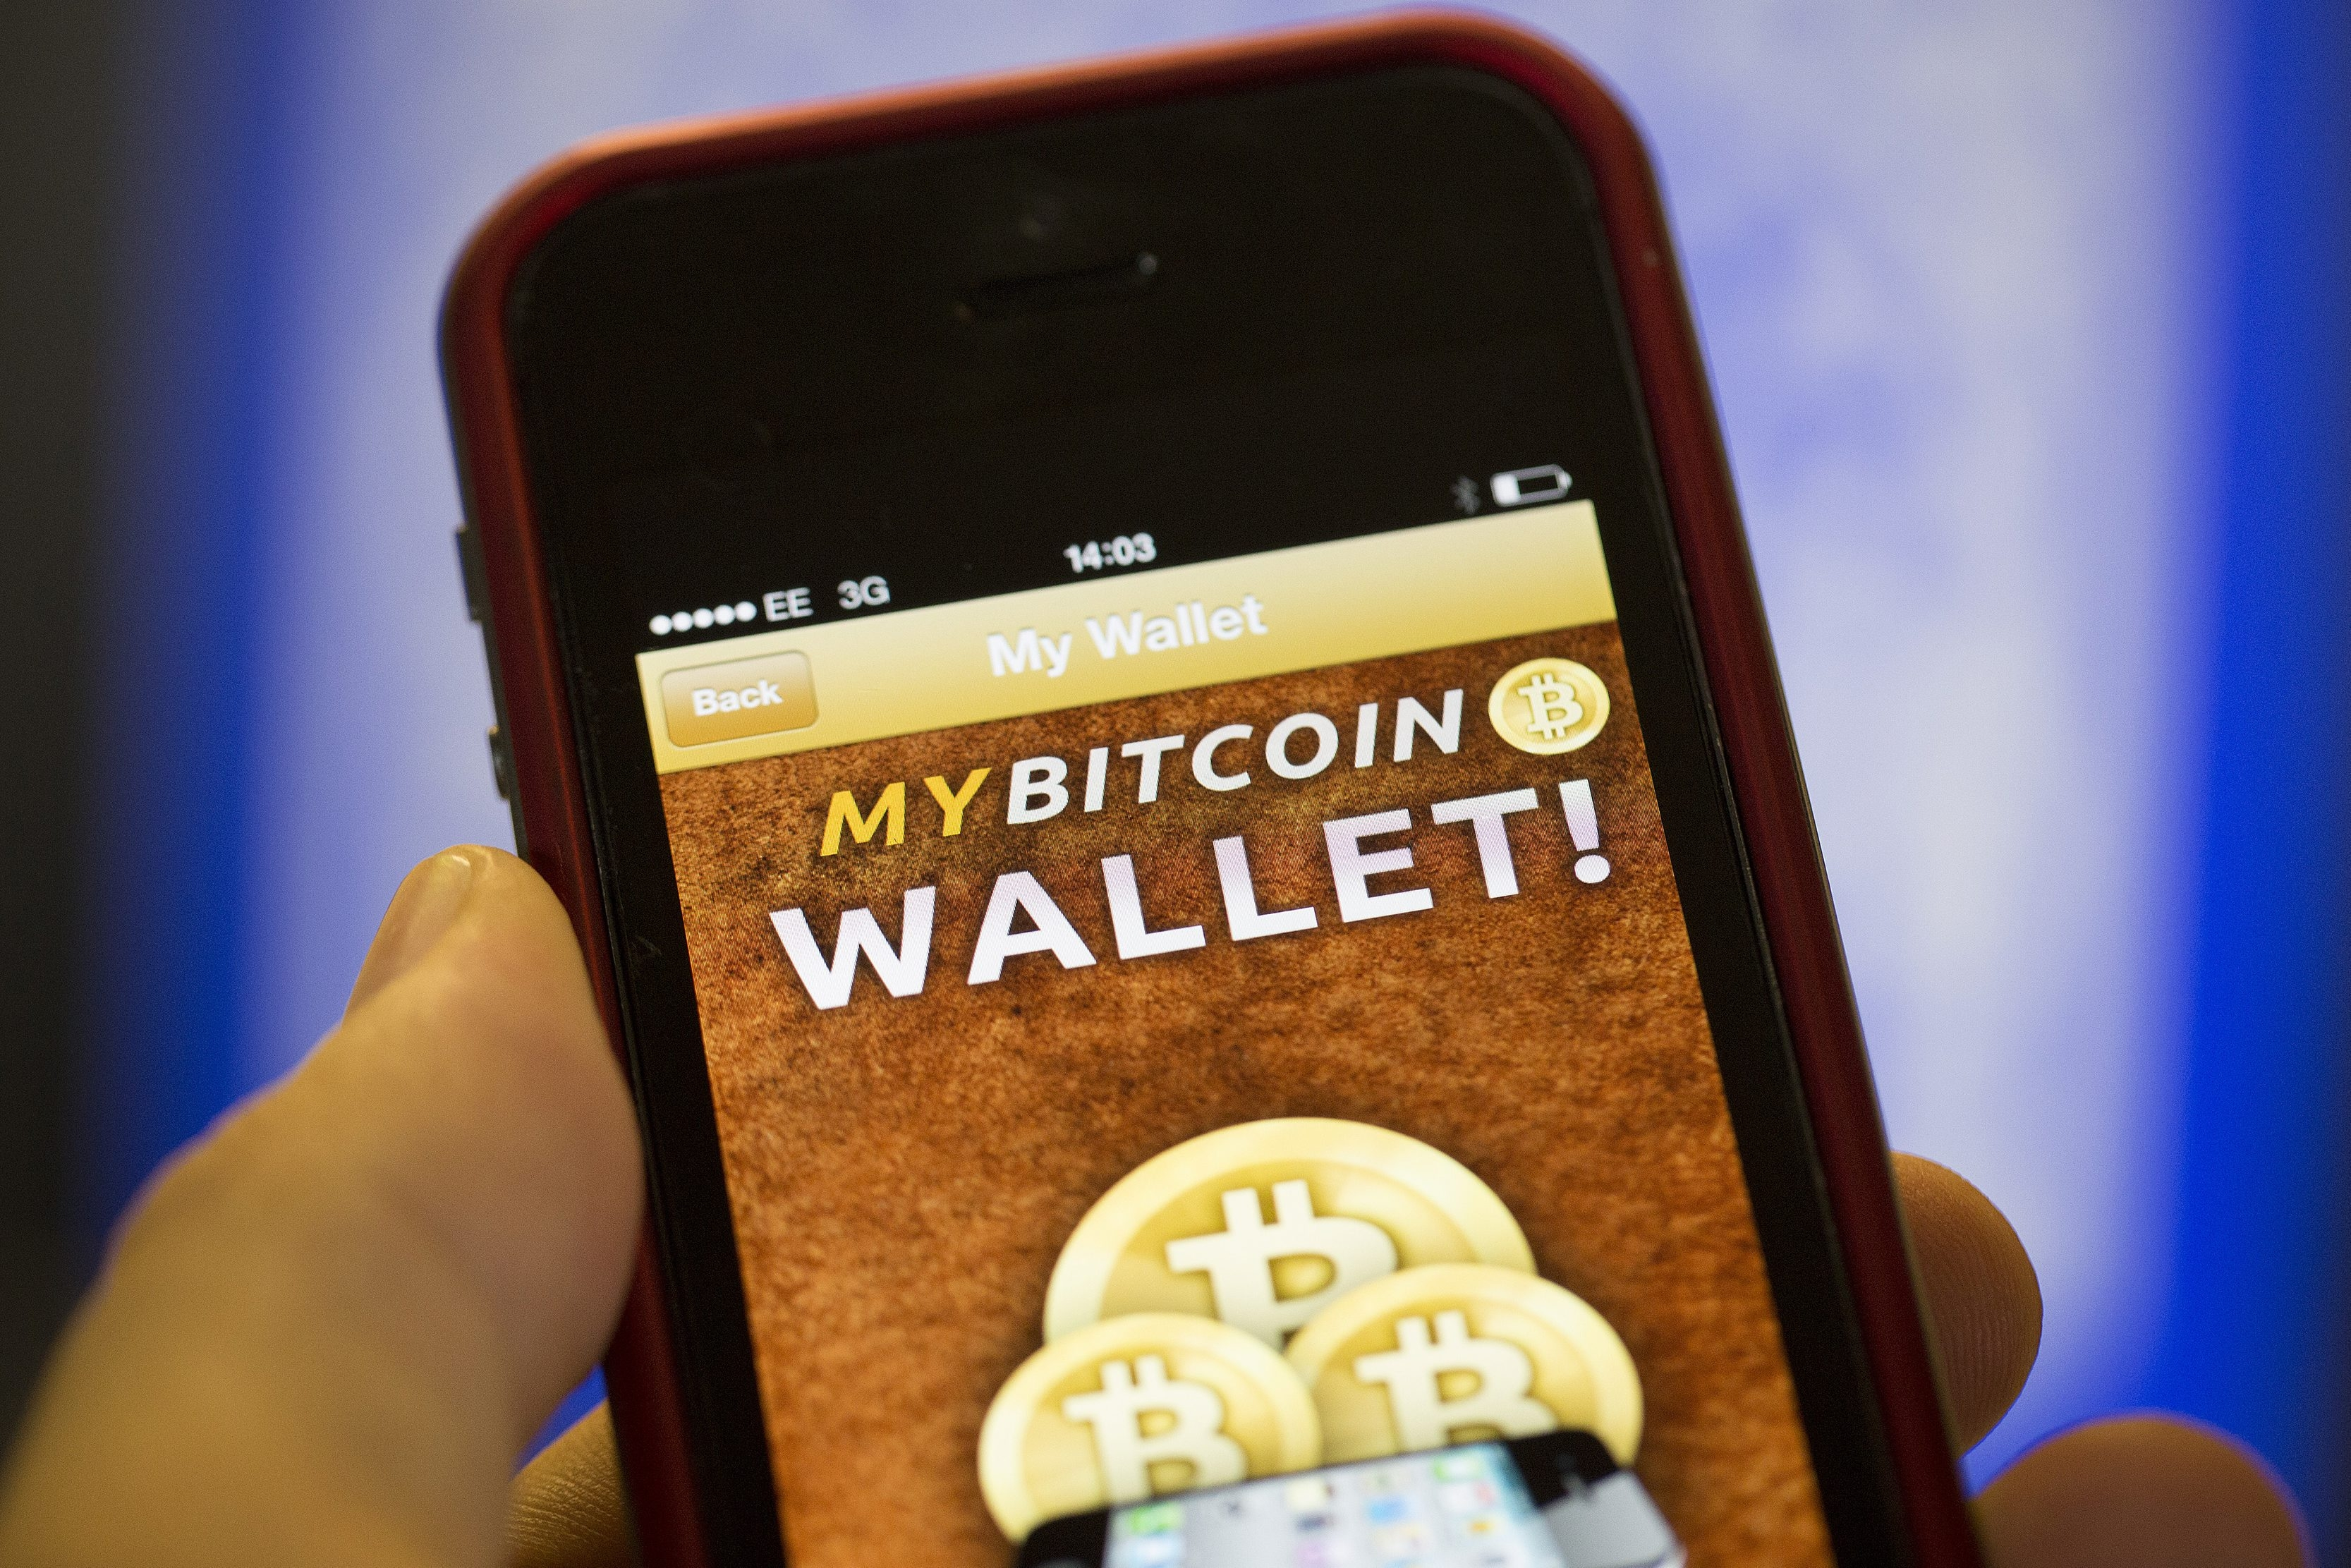 An iPhone displays the Bitcoin Wallet smartphone app. Bitcoins are virtual currency that exist as software and aren't regulated by any country or banking authority.